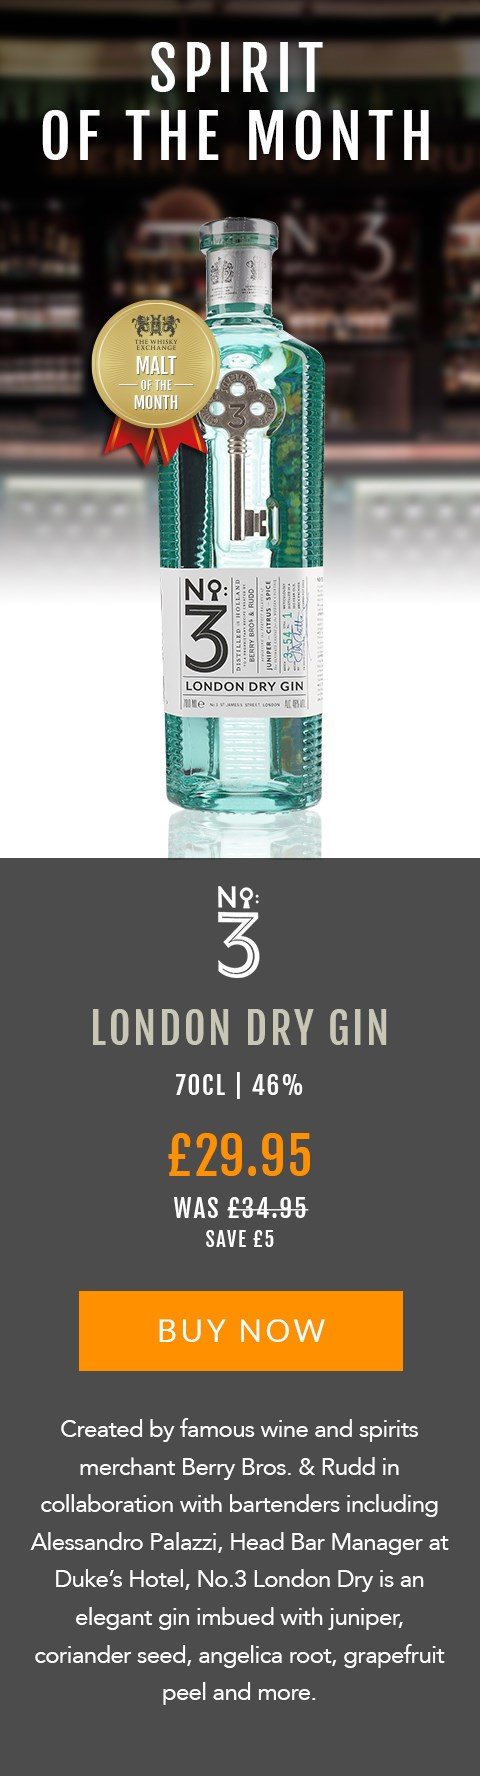 SPIRIT OF THE MONTH  No.3 London Dry Gin  70cl | 46%  £29.95 (was £34.95)  Save £5  BUY NOW> https://www.thewhiskyexchange.com/feature/spiritofthemonth  Created by famous wine and spirits merchant Berry Bros. & Rudd in collaboration with bartenders including Alessandro Palazzi, Head Bar Manager at Duke's Hotel, No.3 London Dry is an elegant gin imbued with juniper, coriander seed, angelica root, grapefruit peel and more.